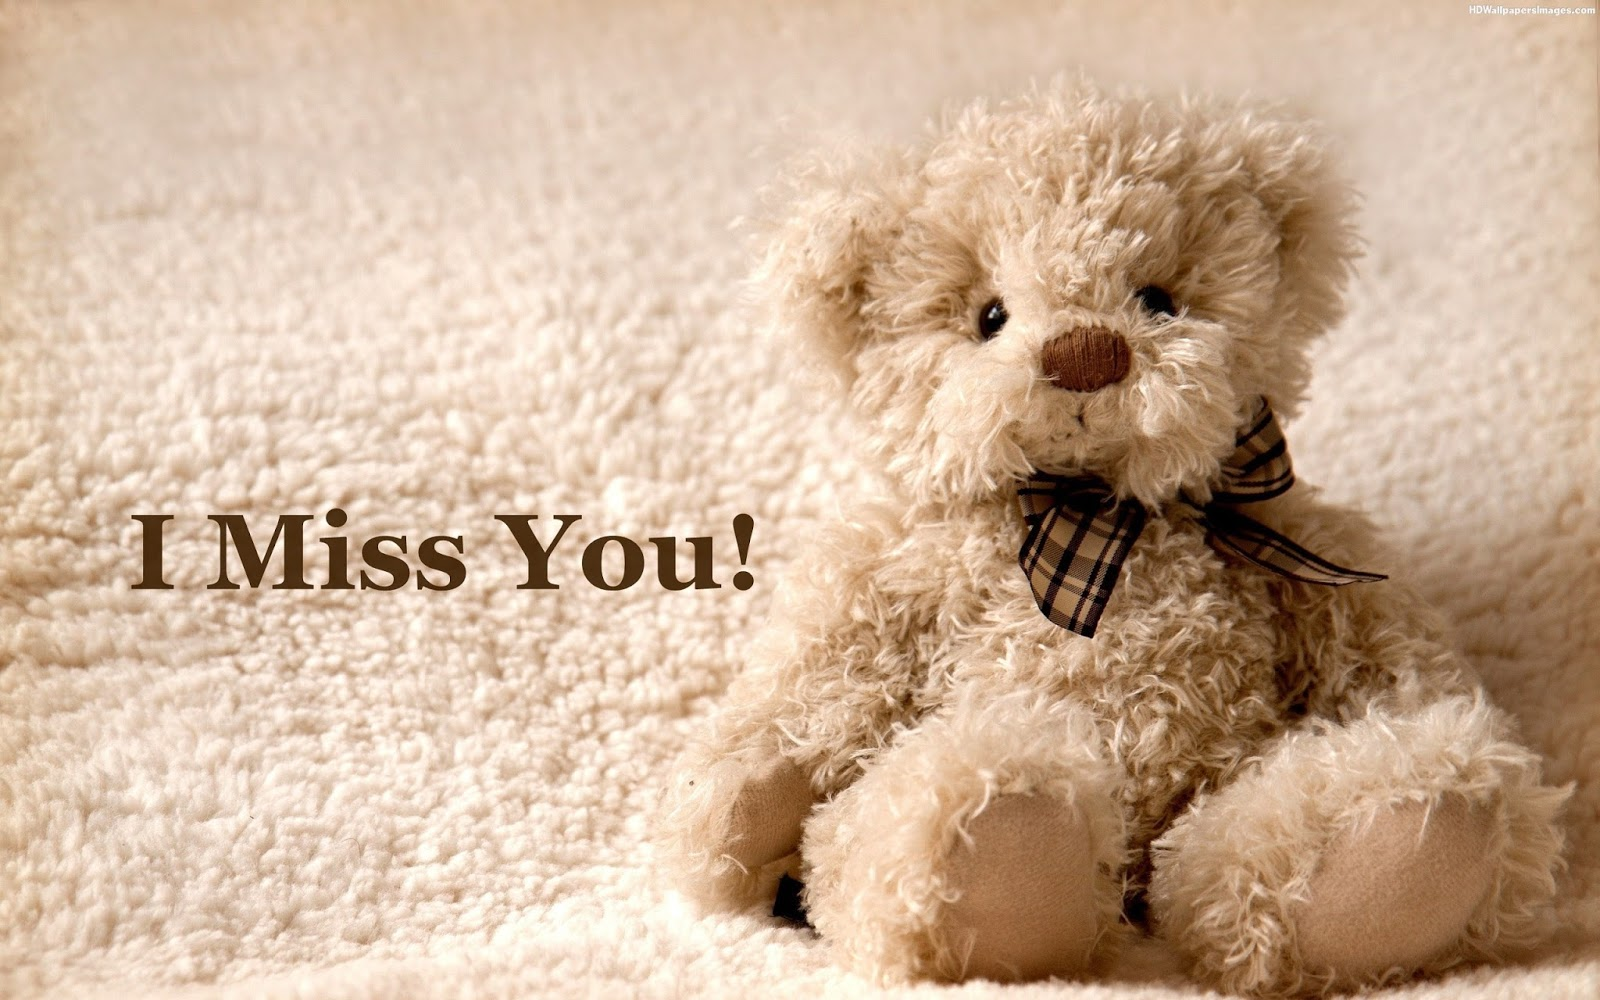 Cute Teddy I Miss You Wallpaper for Whatsapp